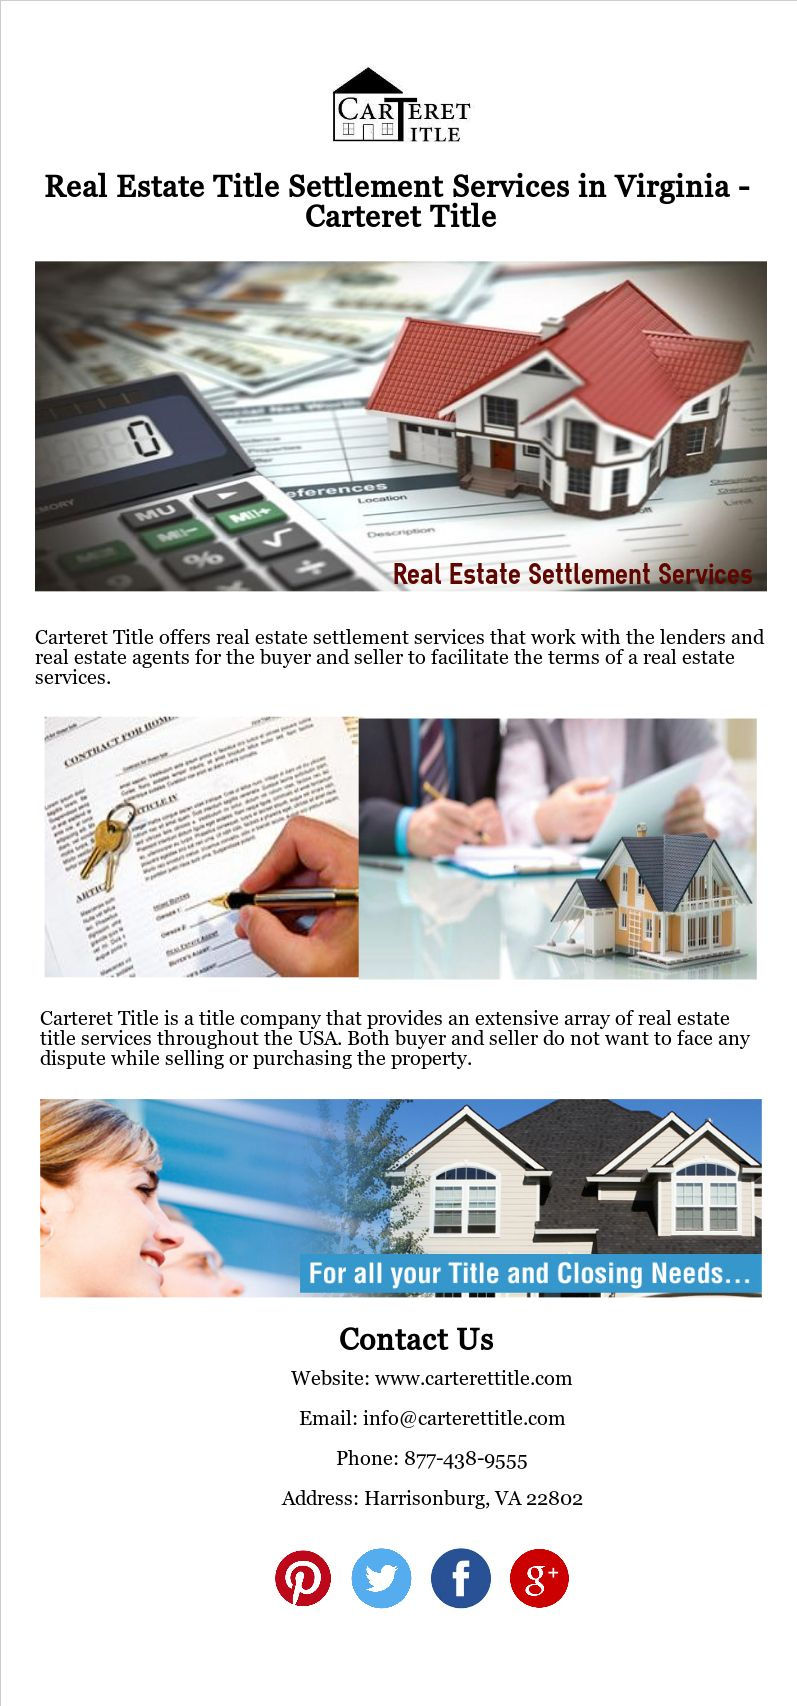 Carteret Title Offers Real Estate Settlement Services That Work